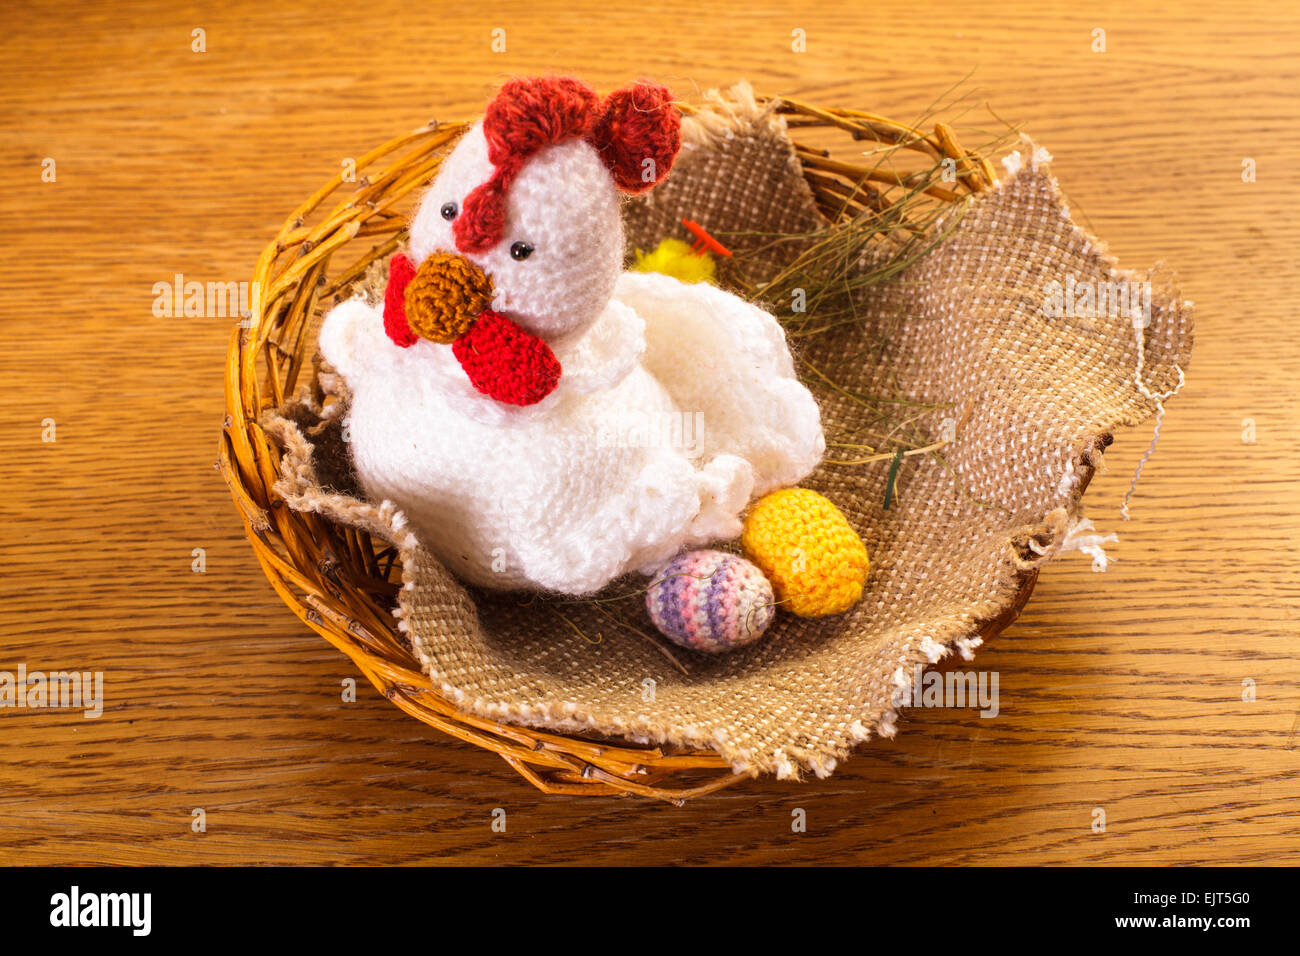 Crochet Chicken With Eggs In The Nest Easter Decorations Stock